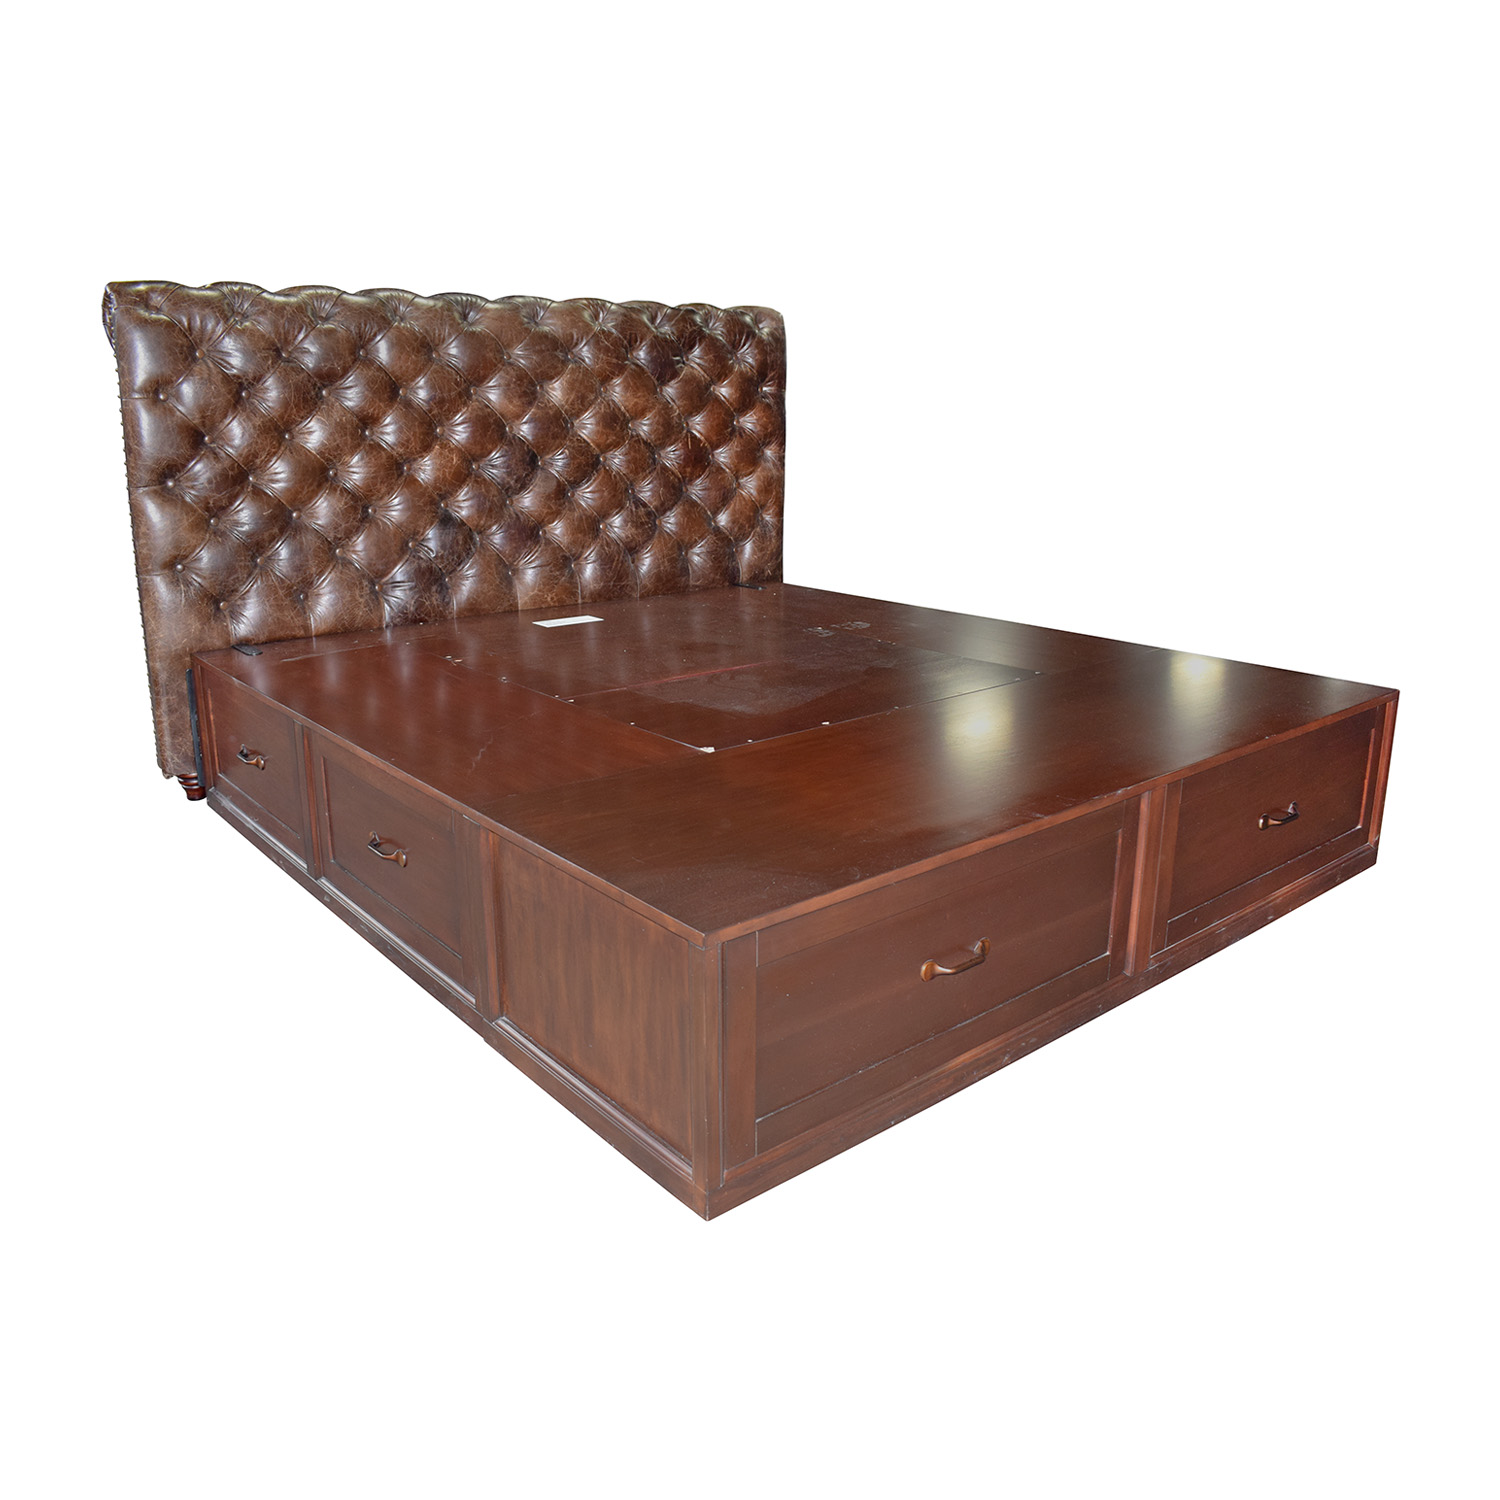 buy Pottery Barn Stratton Brown Platform King Bed Frame with Storage and Tufted Leather Headboard Pottery Barn